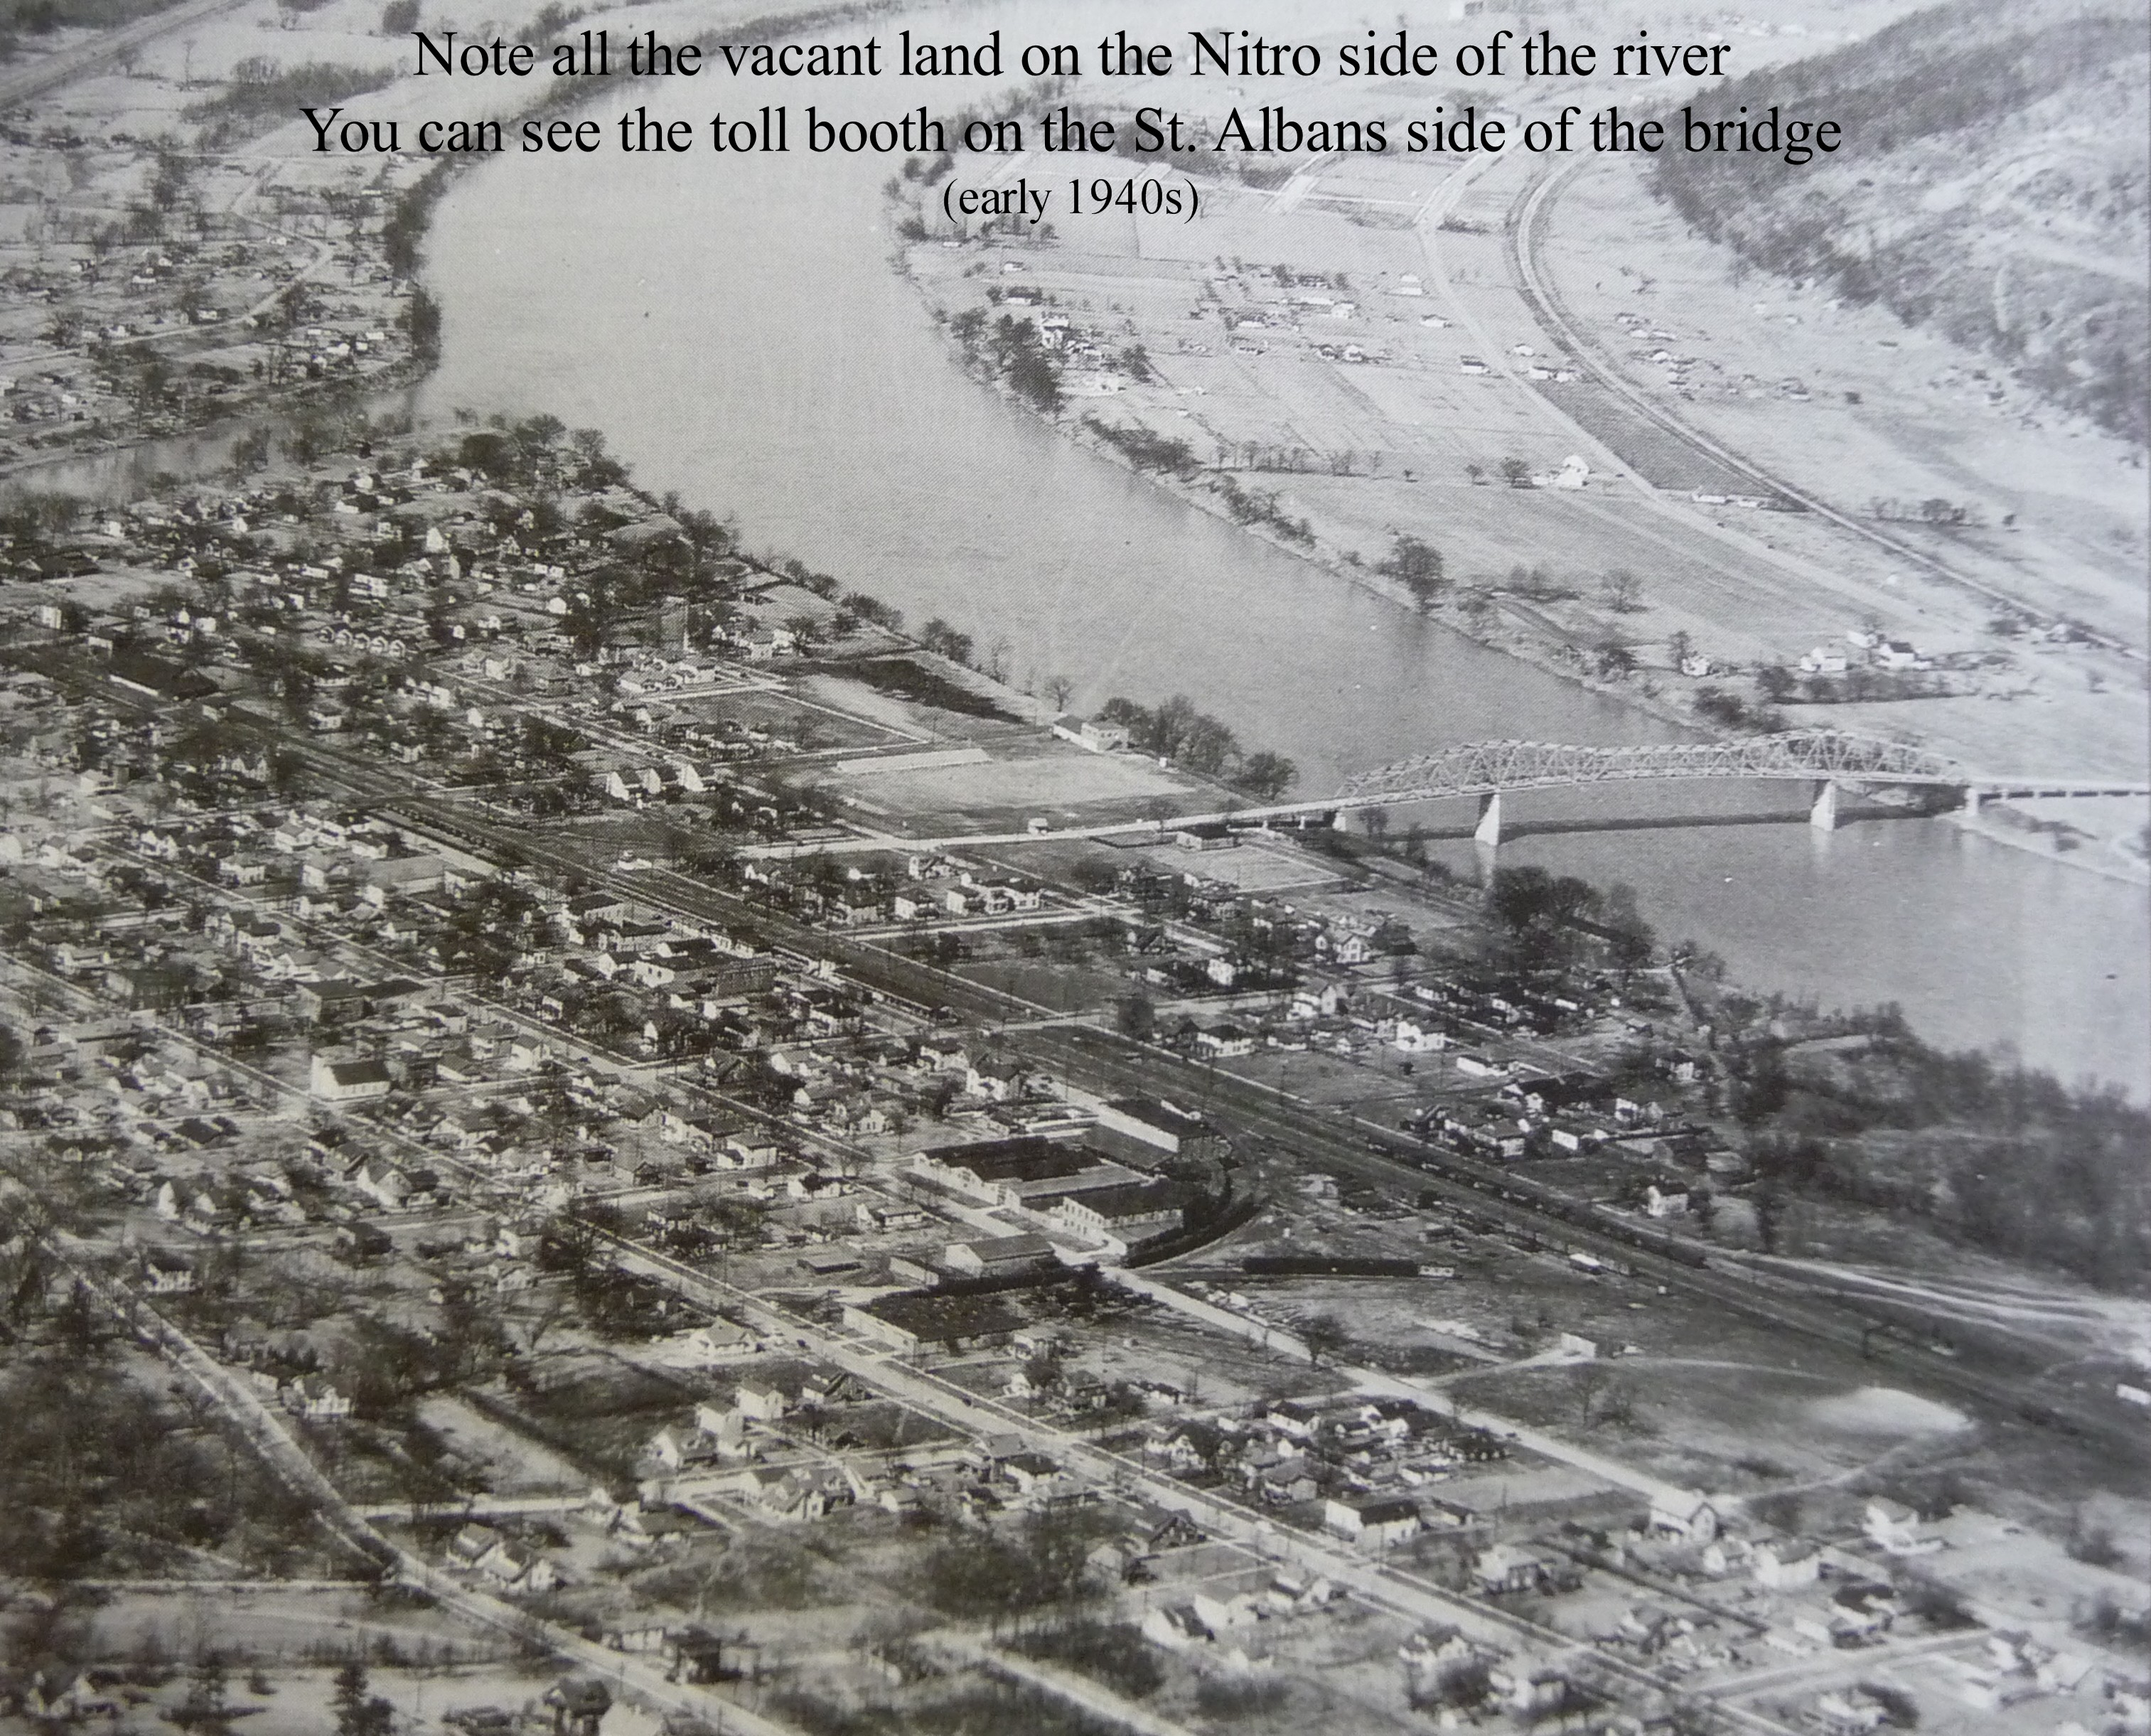 Aerial view of the two cities during the early years of the bridge